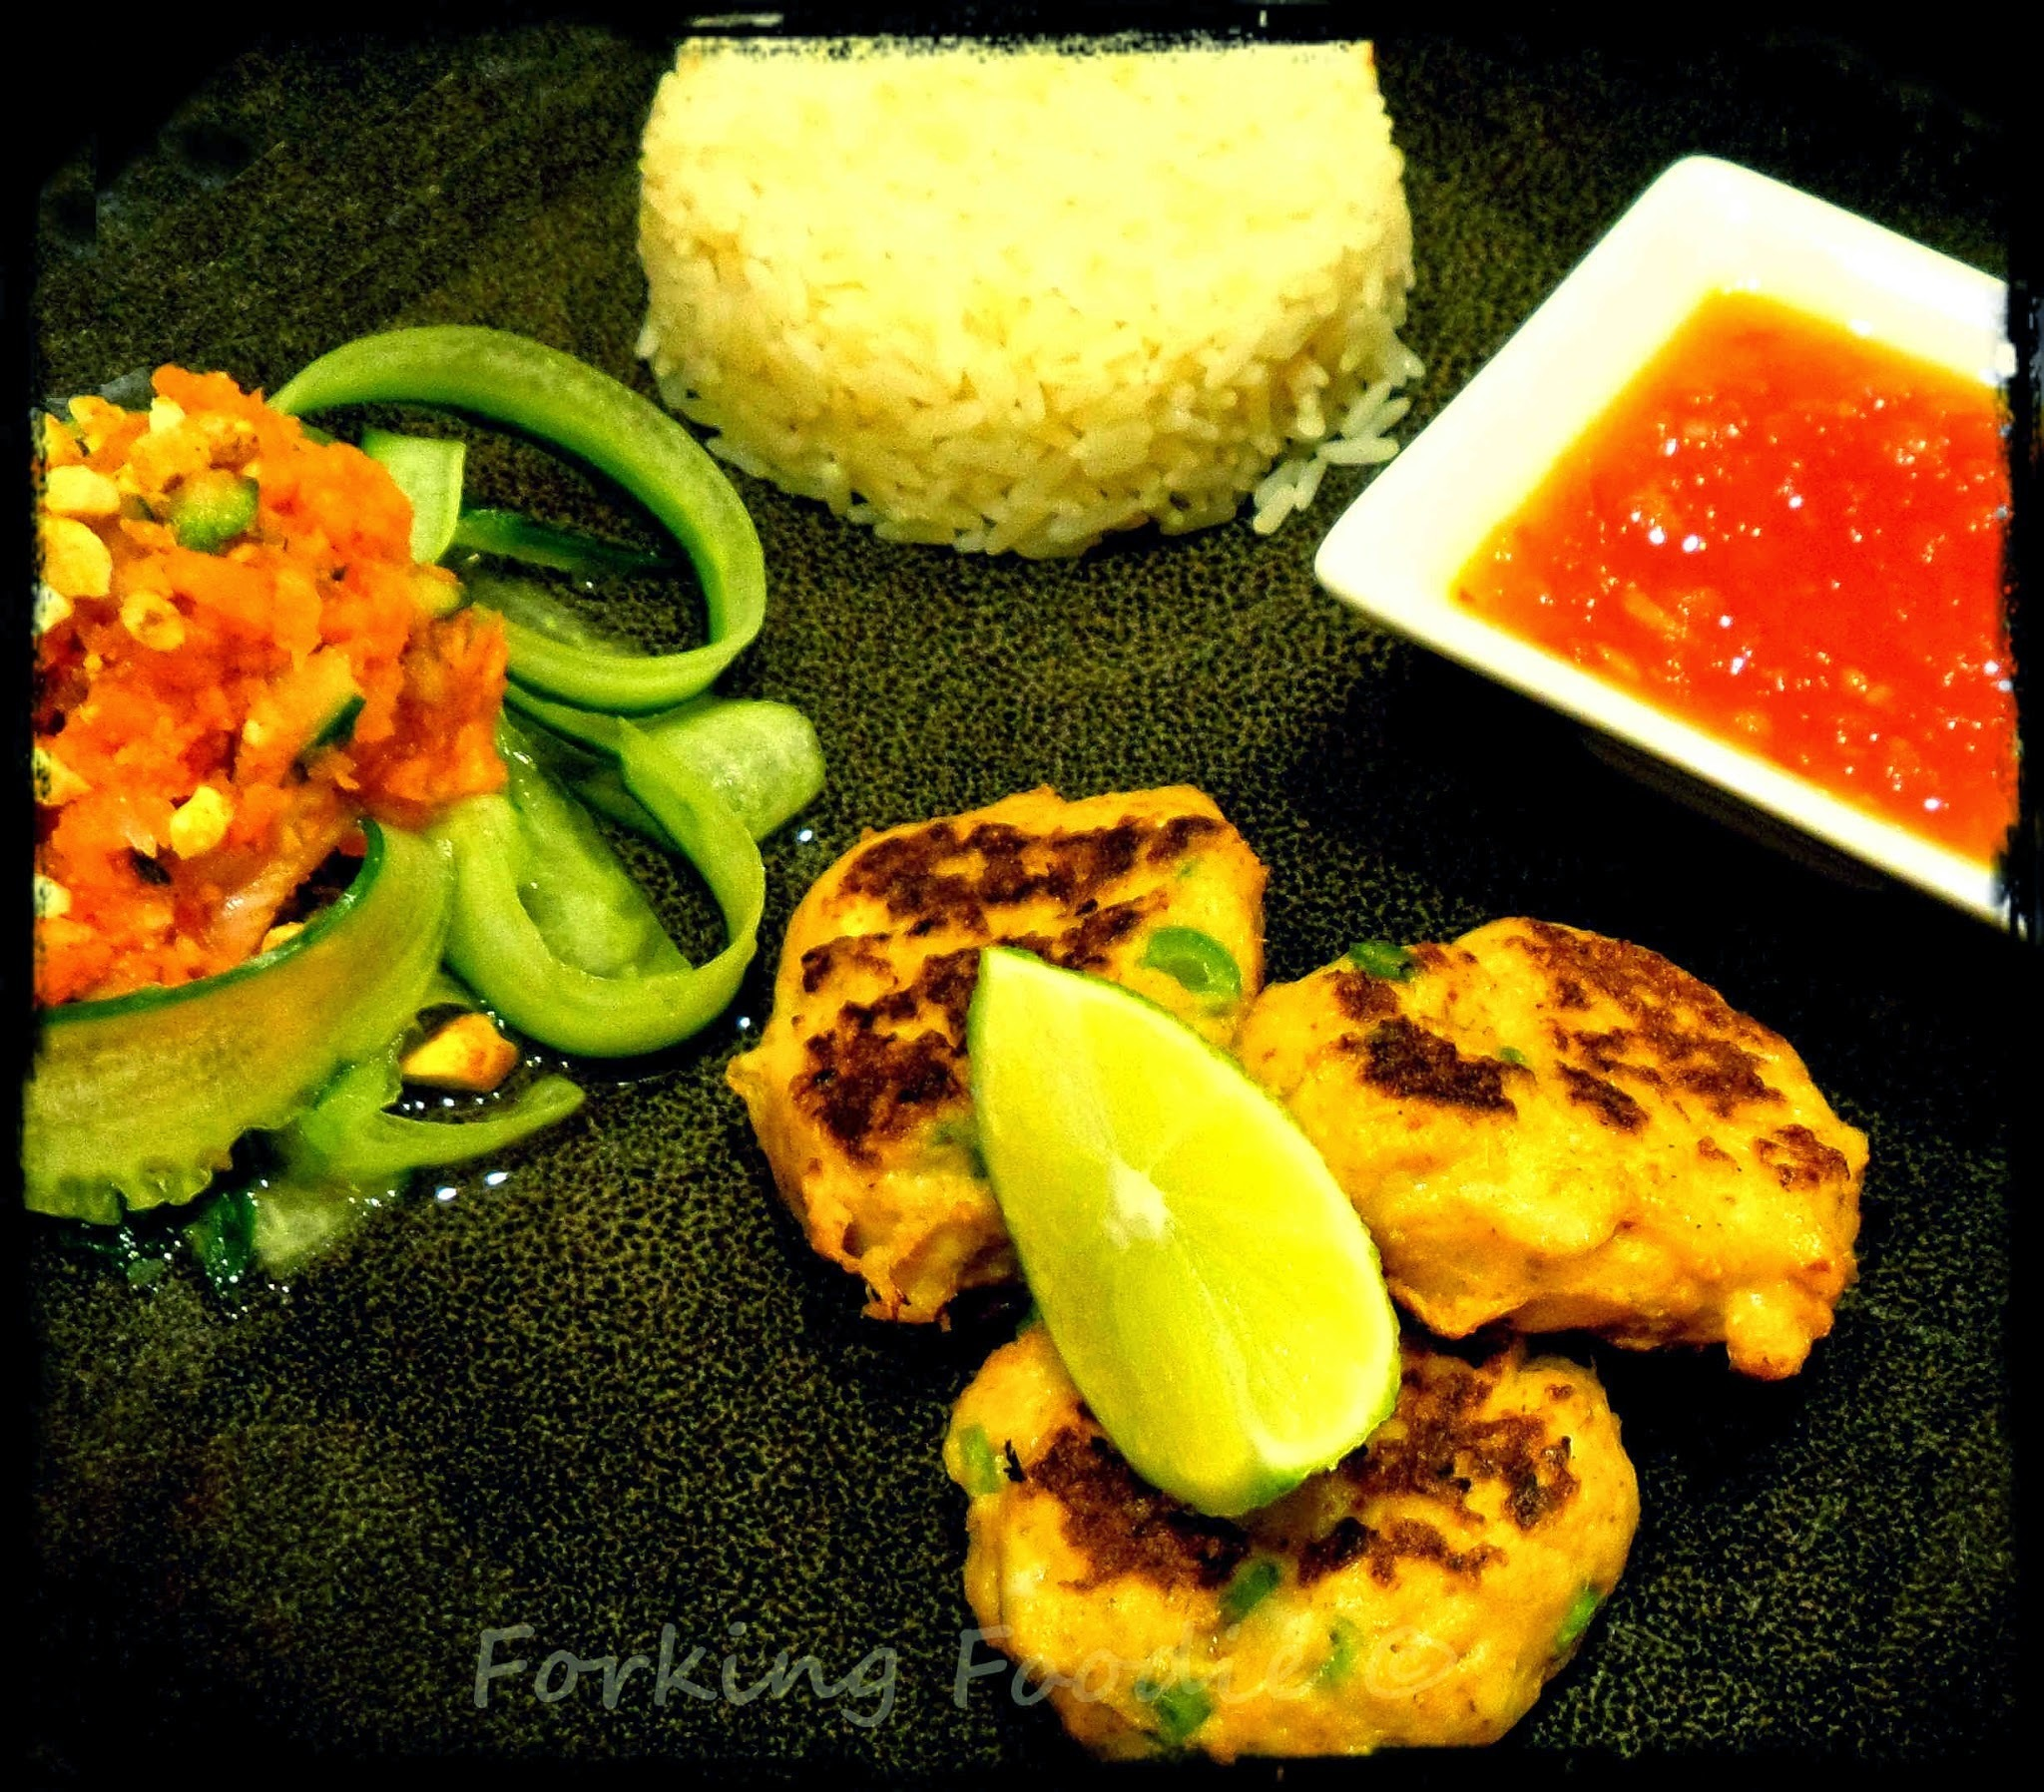 Thai Crab Cakes or Fish Cakes with Sweet Chilli Sauce and Fresh Pickled Vegetable Relish - includes Thermomix method